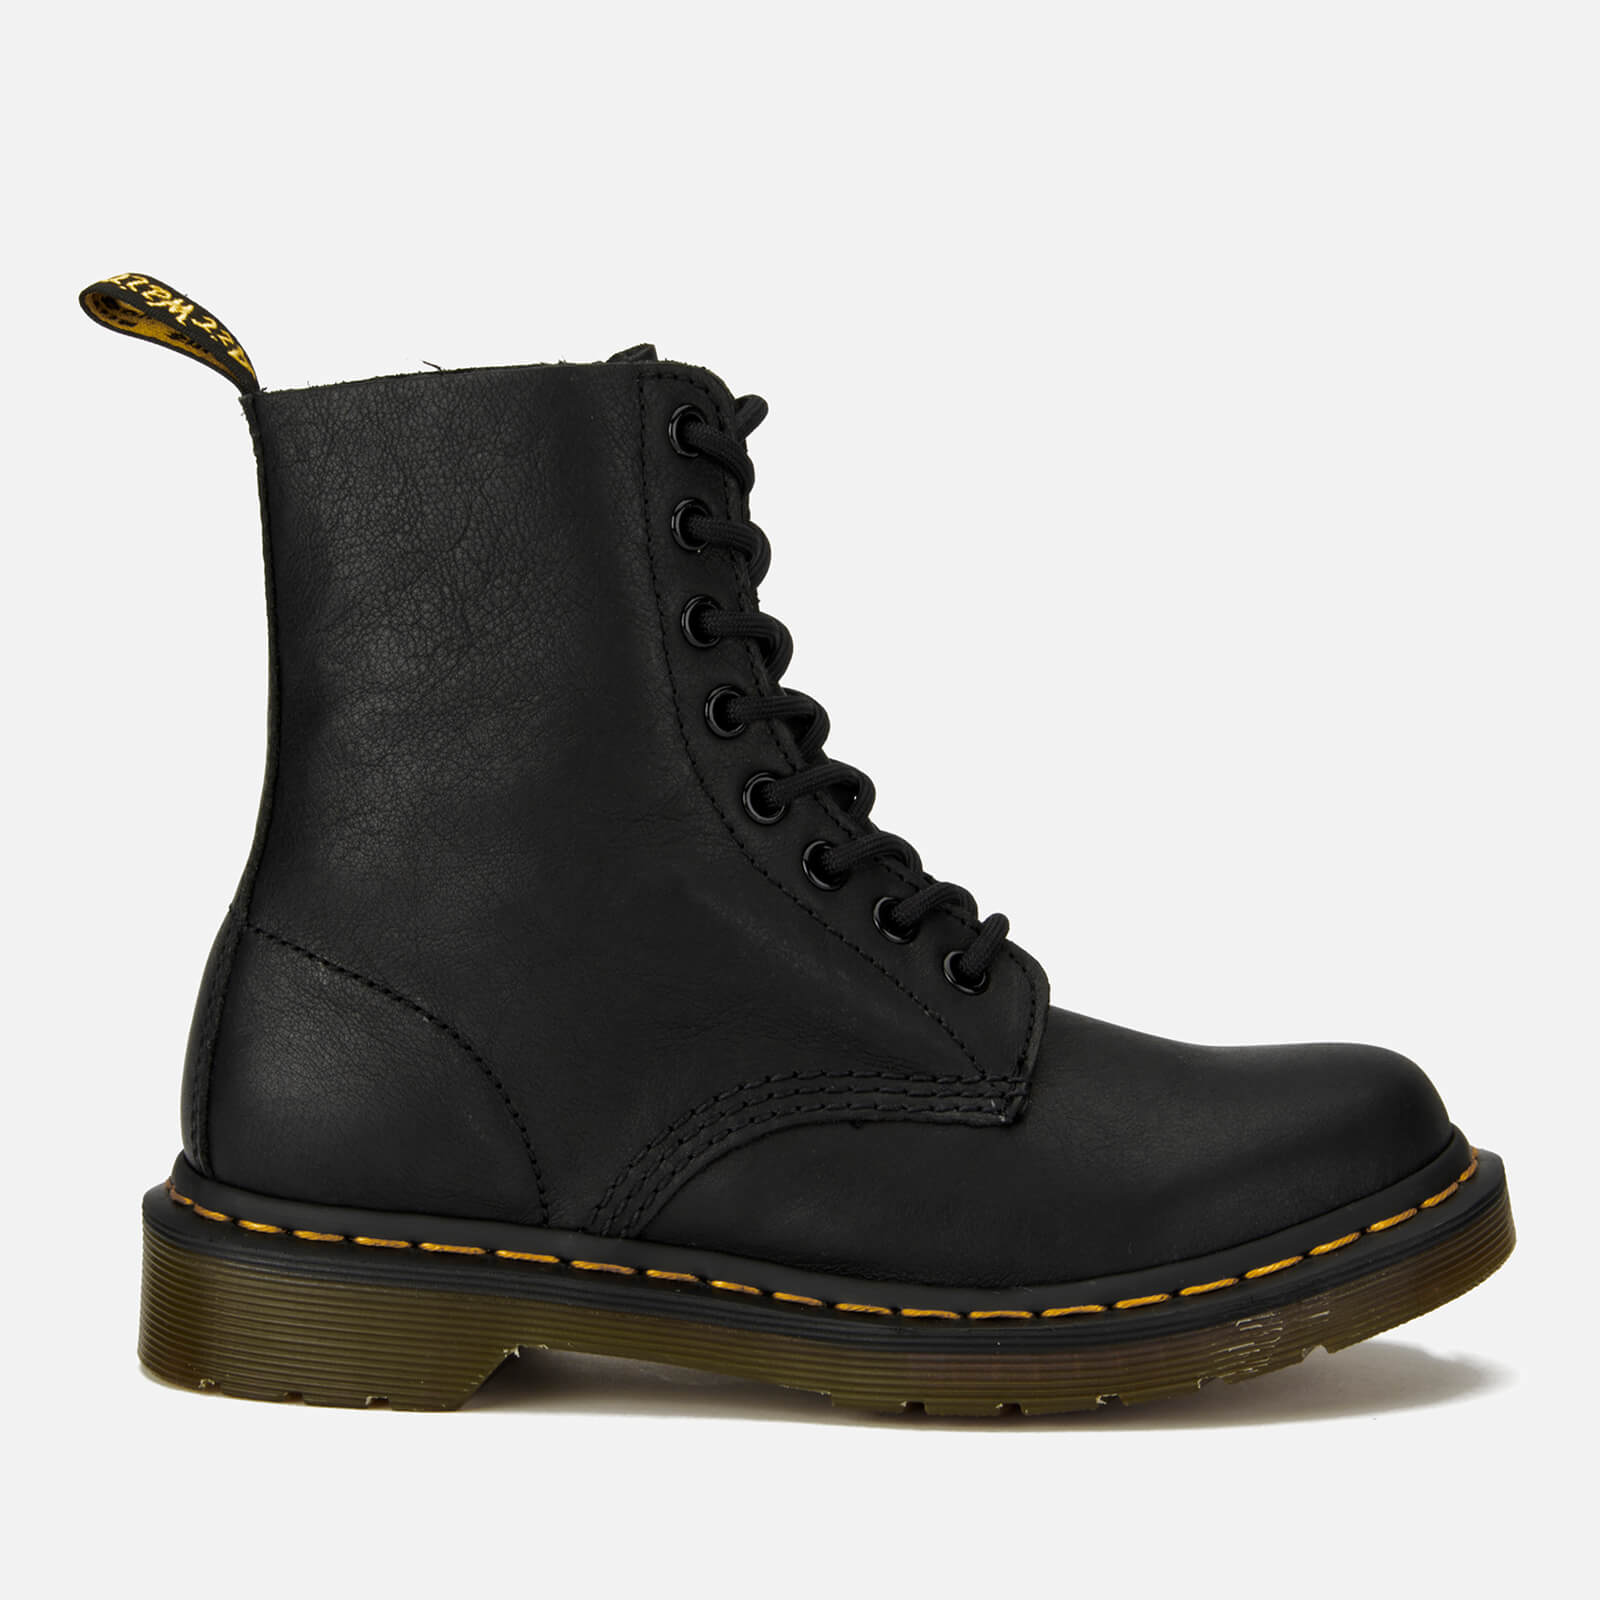 Dr. Martens Women's 1460 Pascal Virginia Leather 8-Eye Boots - Black - UK 8 - Black